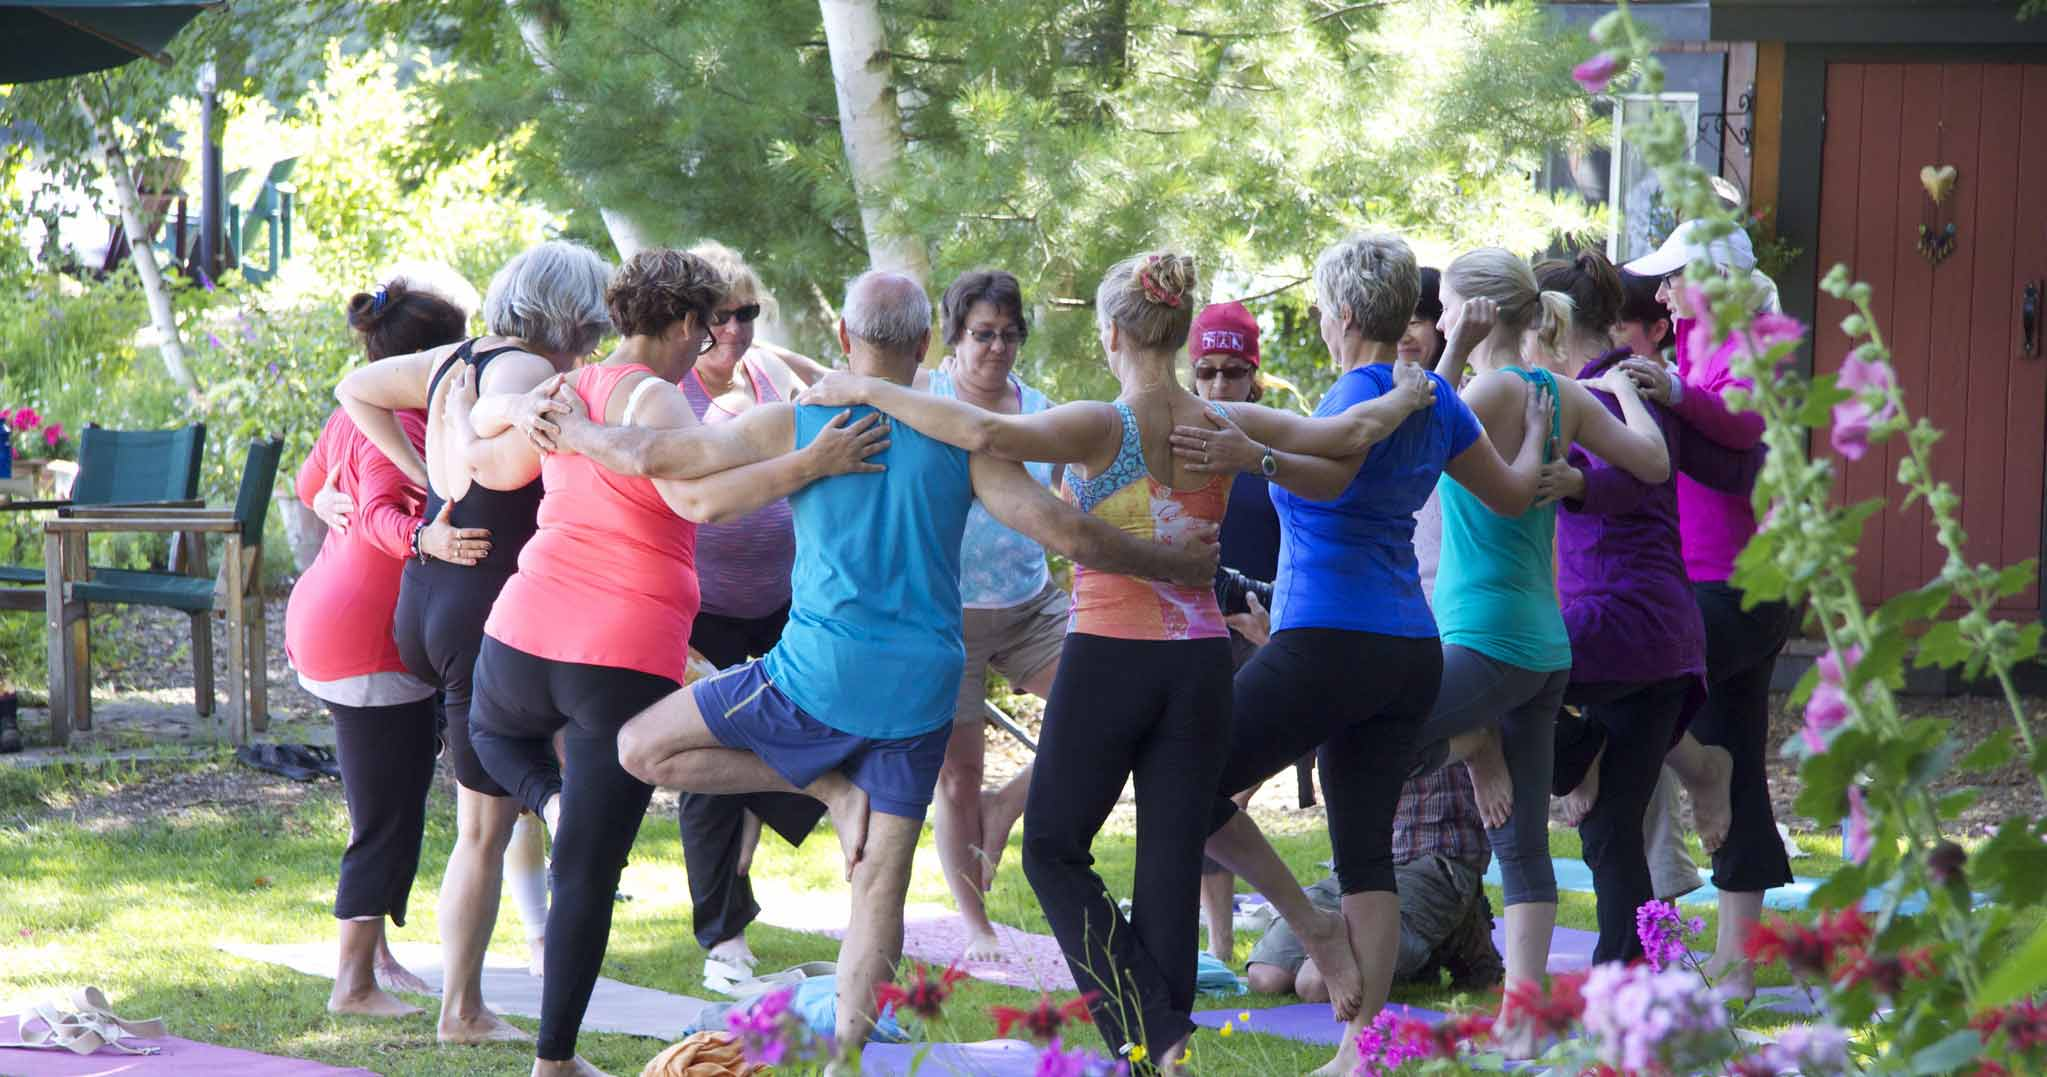 A group balancing together in a yoga pose underneath the trees